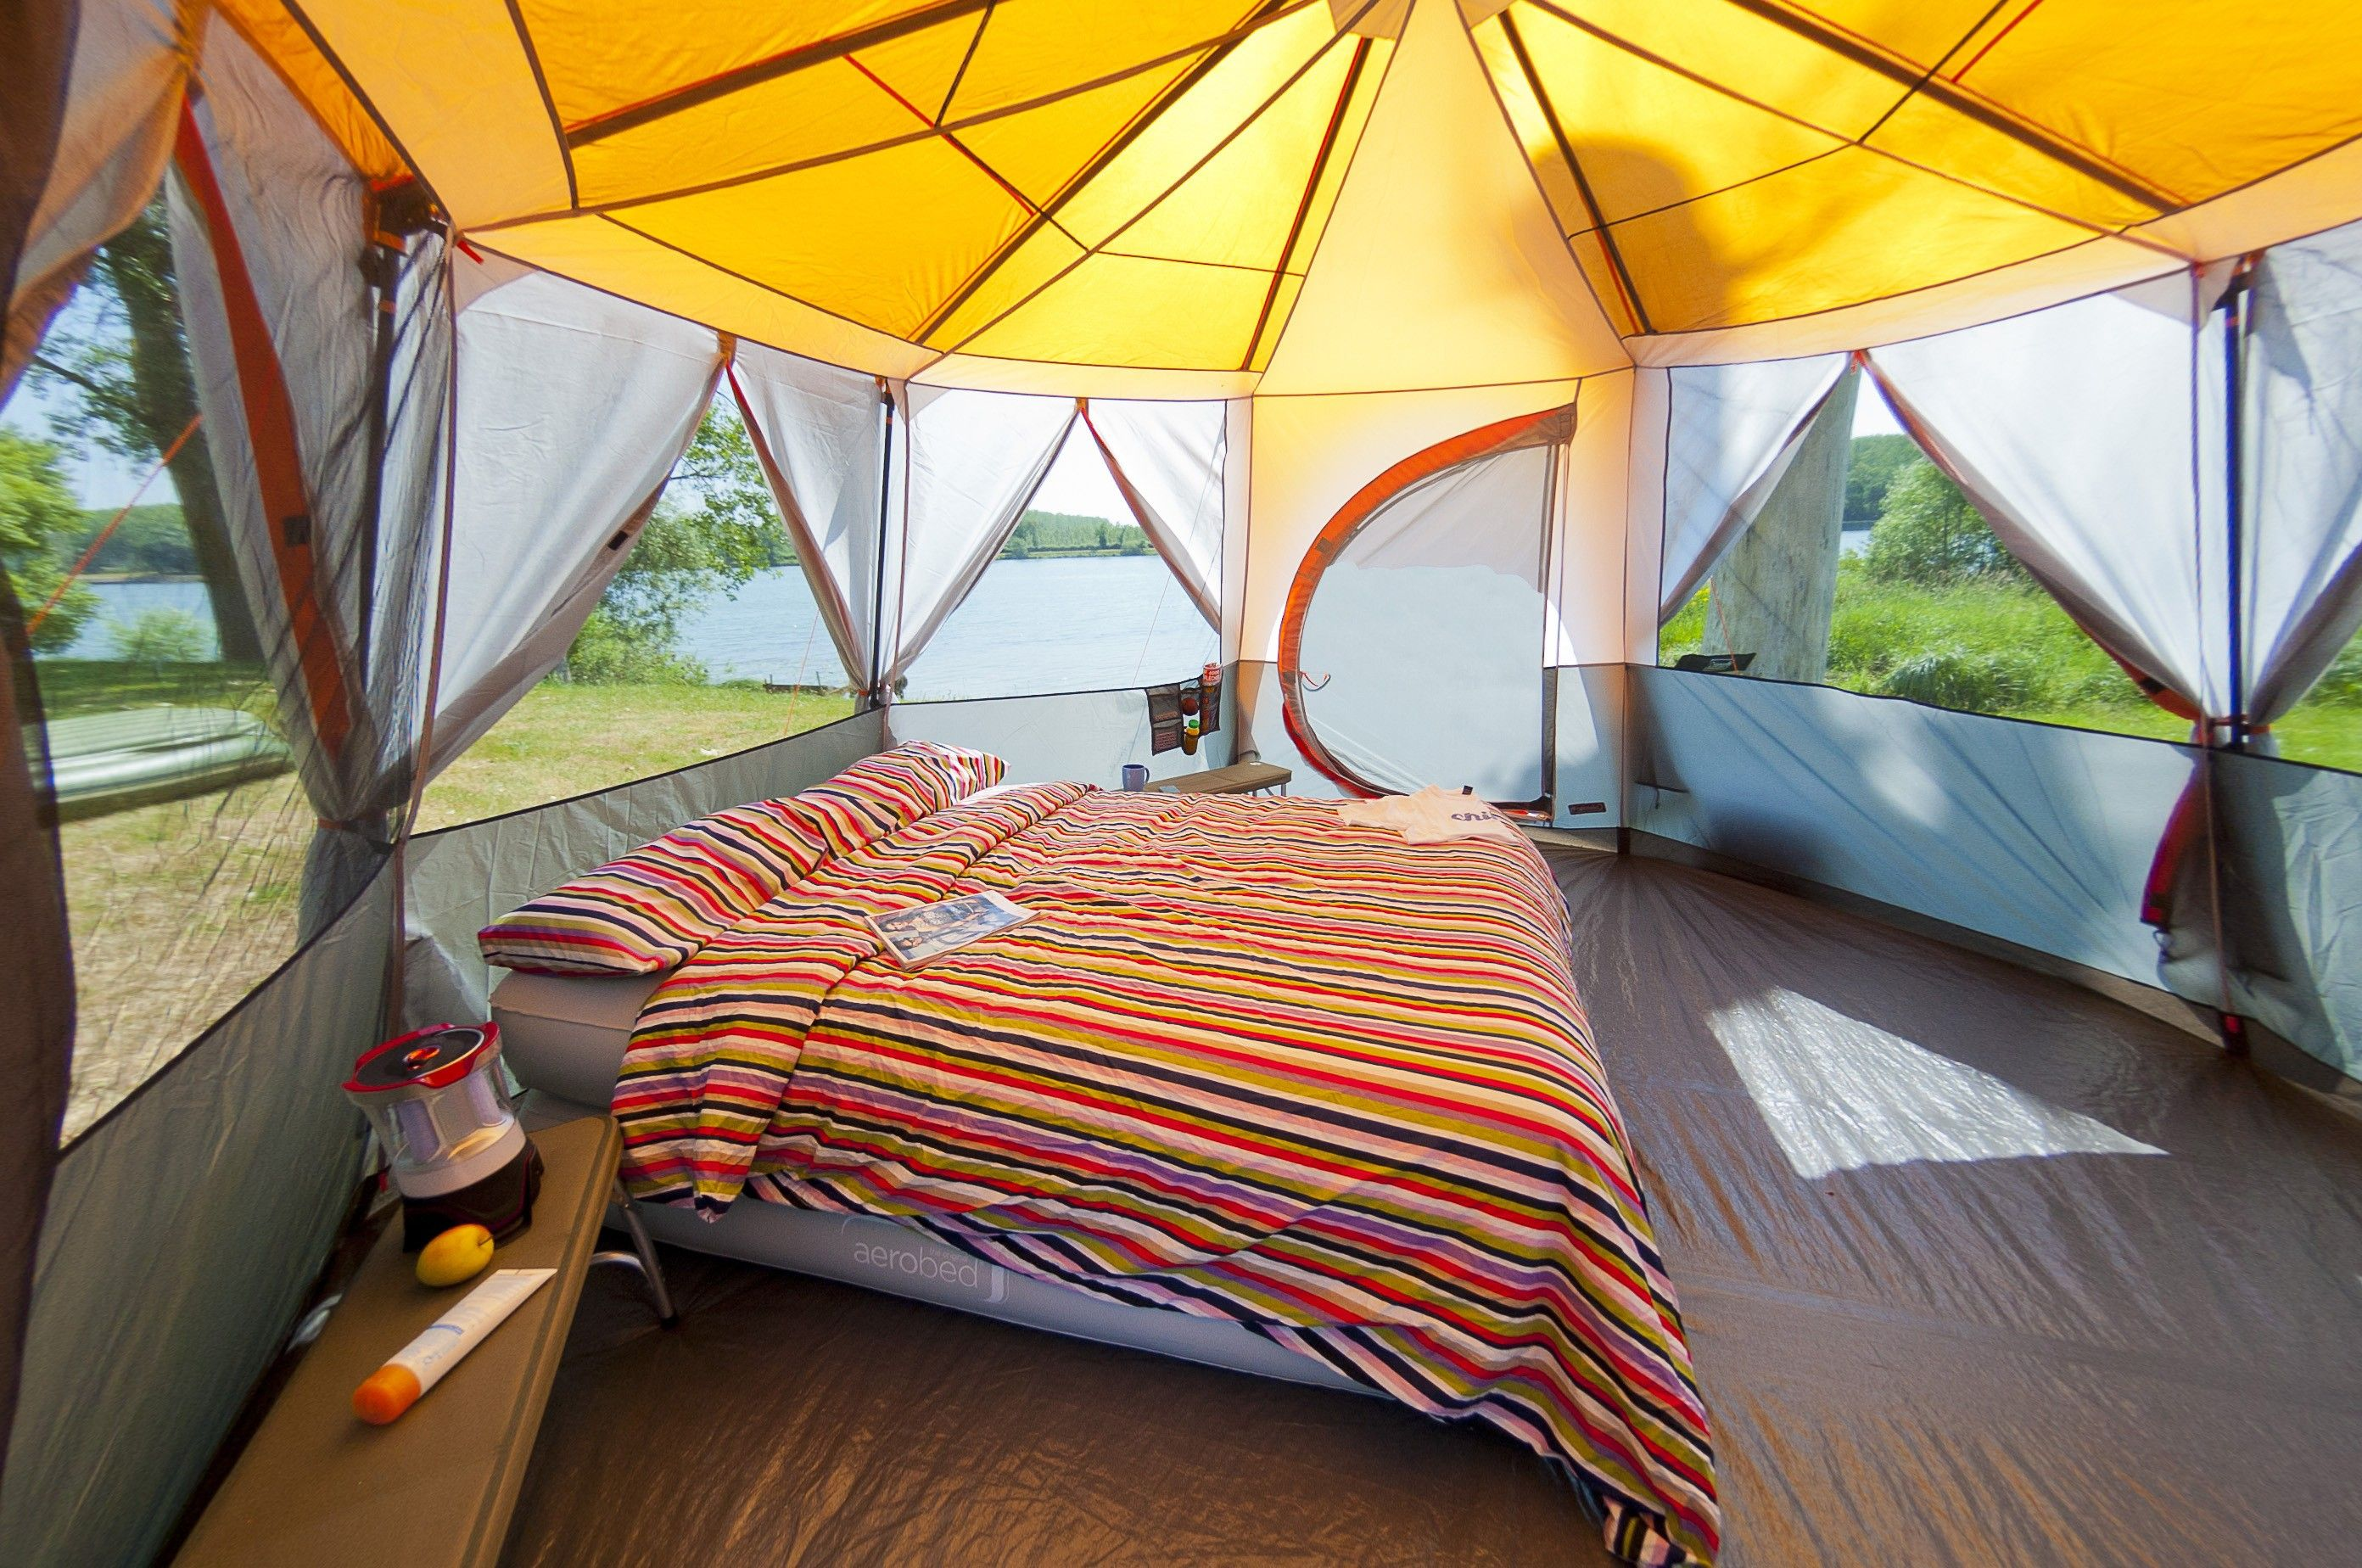 Inside the Coleman 8 Octagon Tent & Inside the Coleman 8 Octagon Tent | My Glamping Bedroom ...